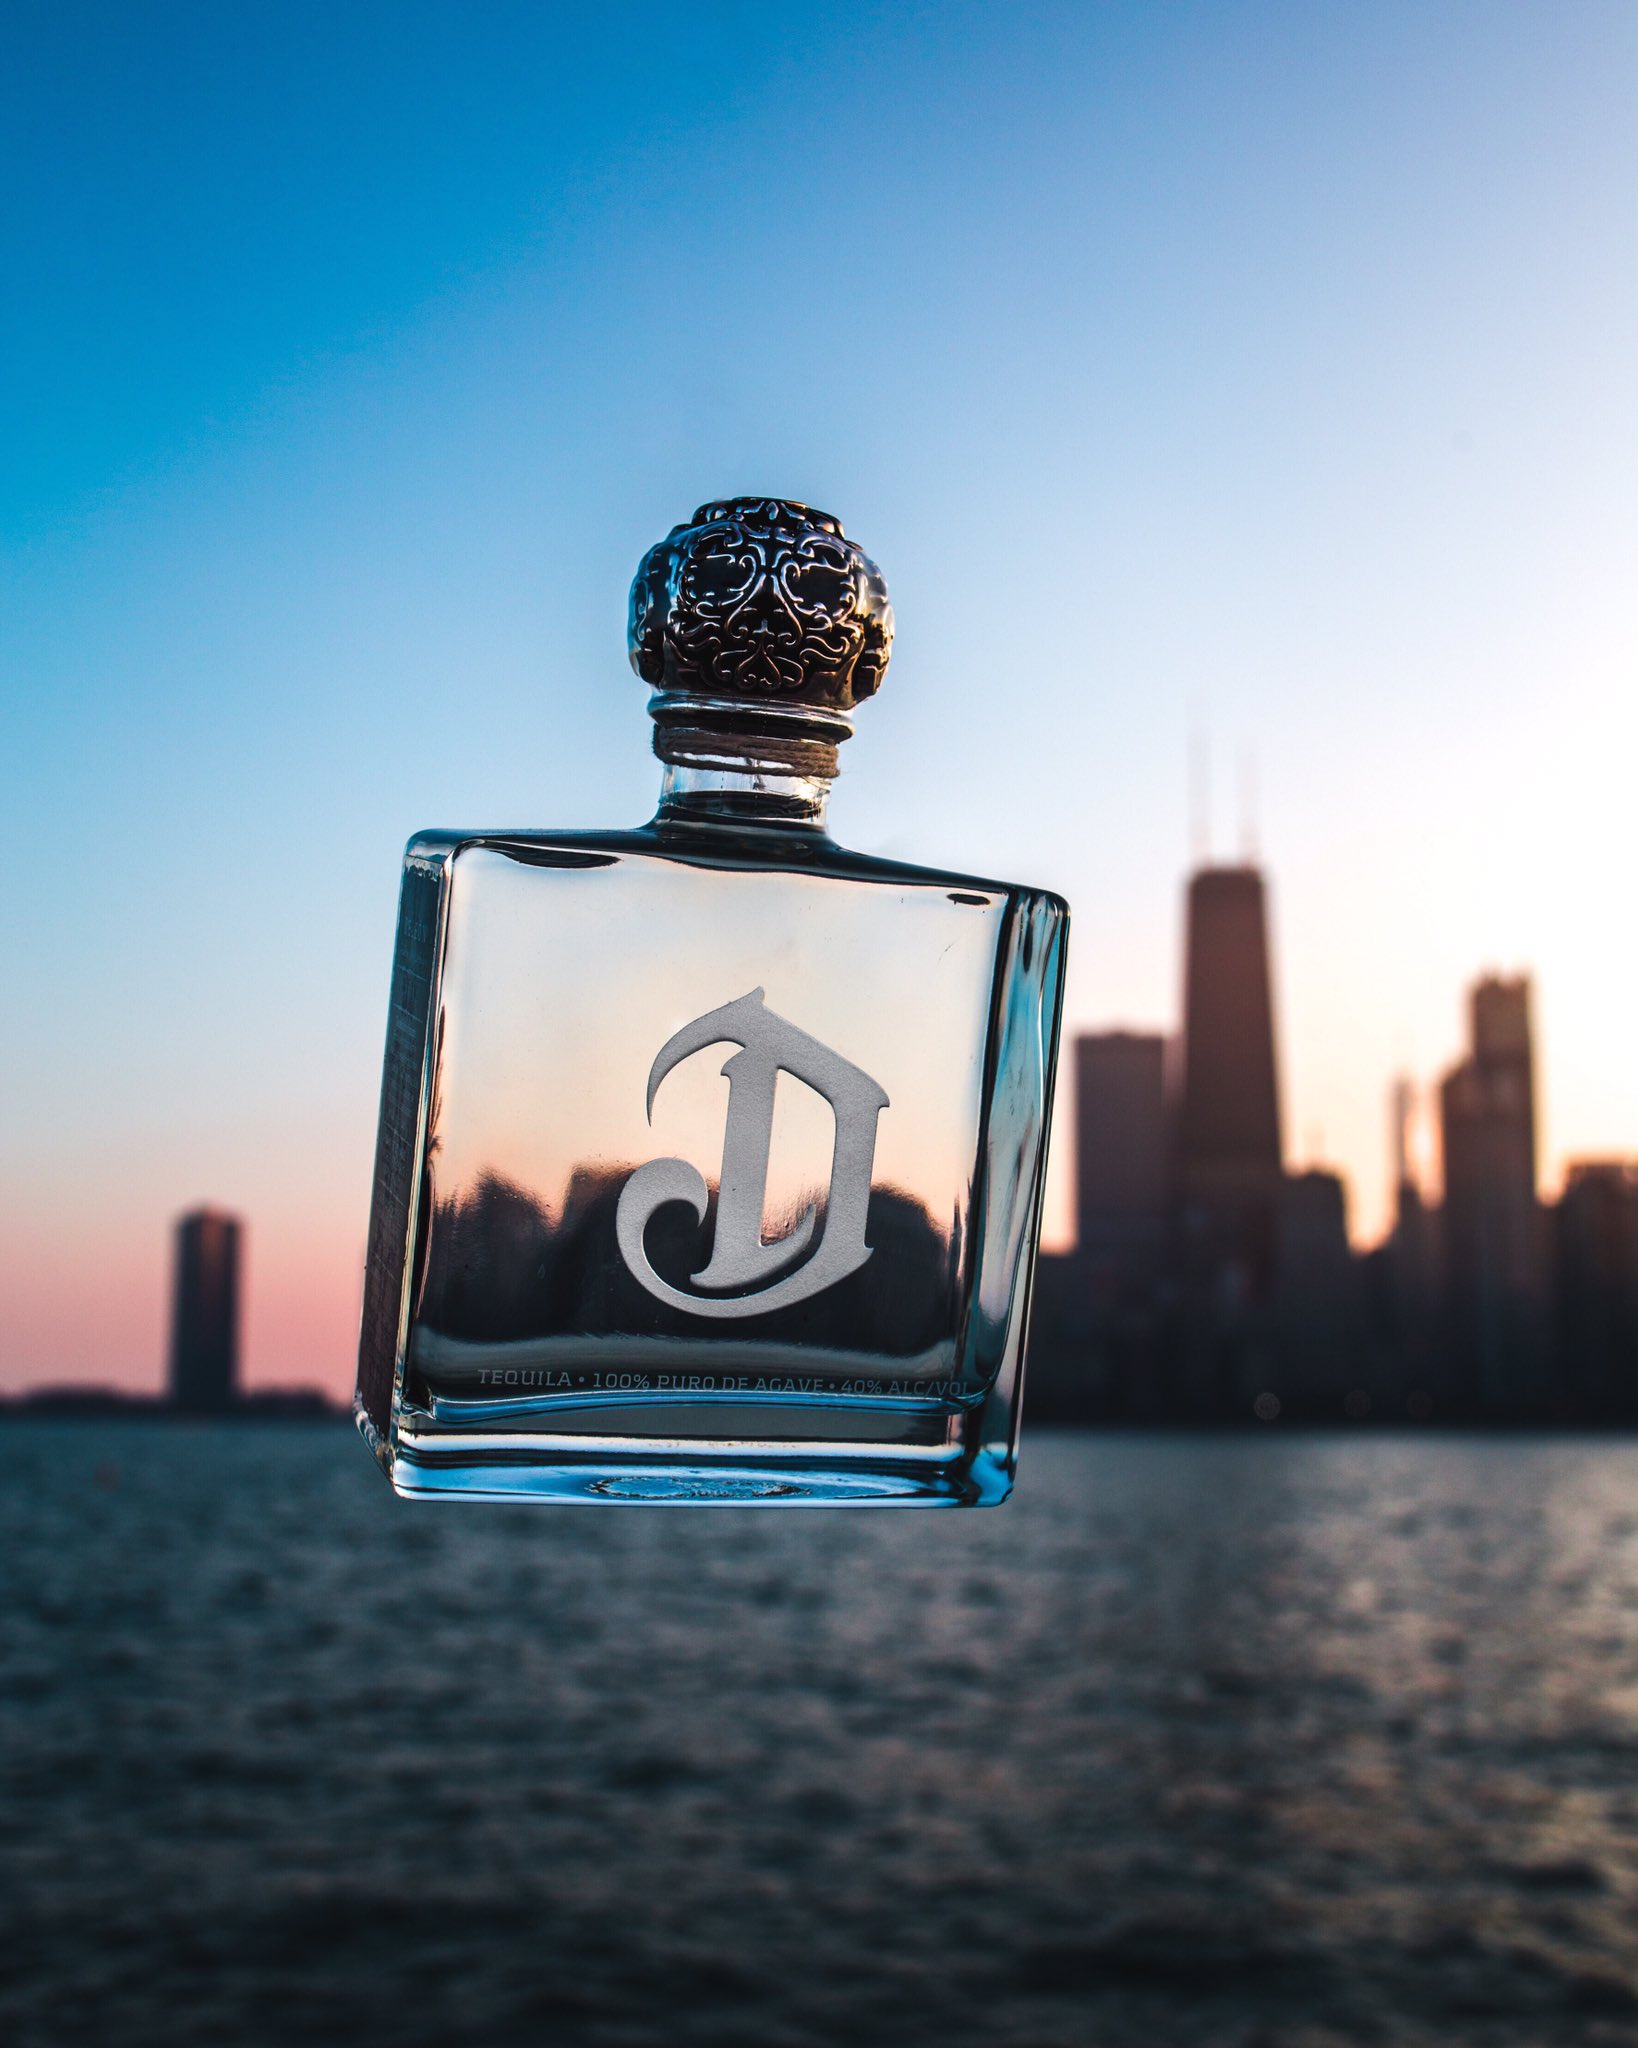 CHICAGO!! We're here to introduce you to @deleontequila and bring you to #TheNextLevel!! Let's GO!! #DeleonNIGHTS https://t.co/Si5VpvHBec